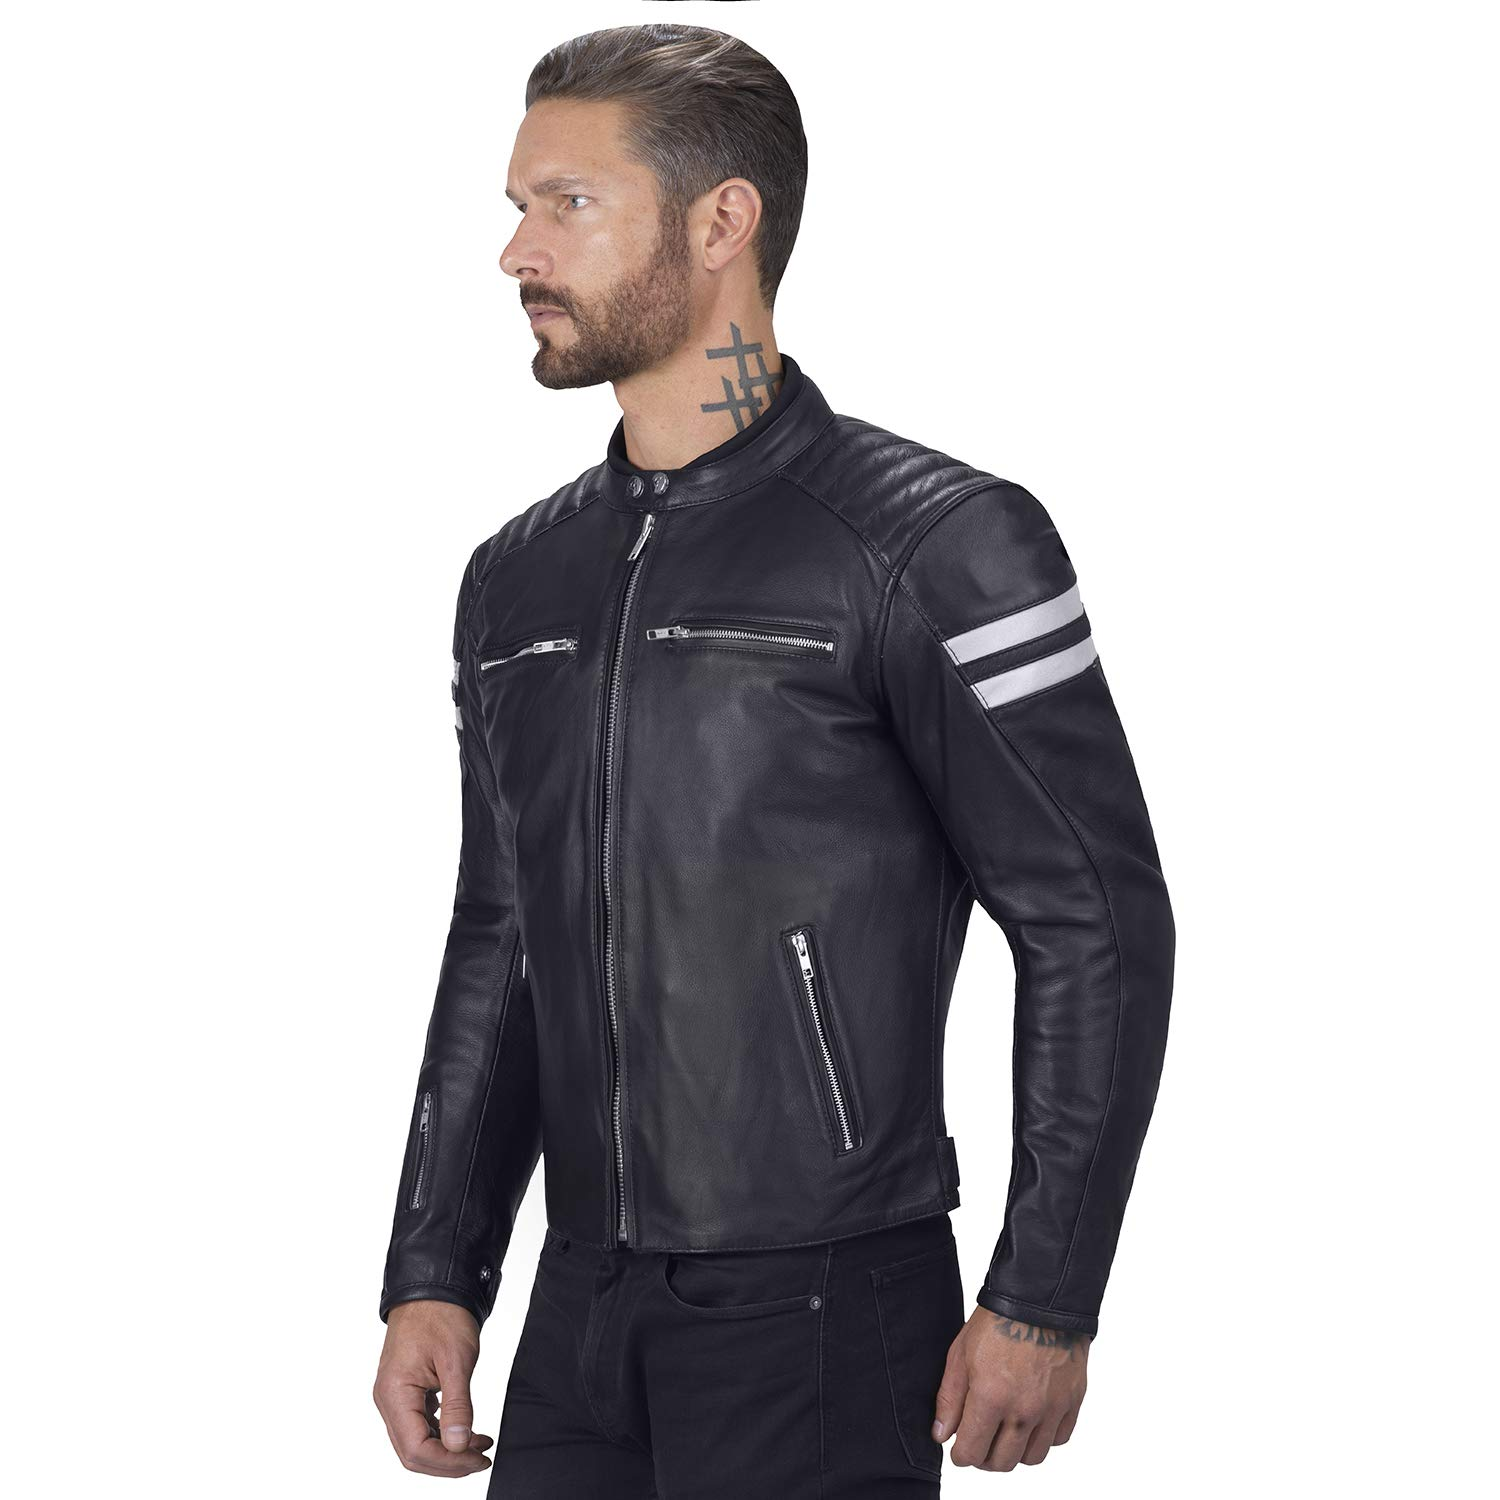 Viking Cycle Bloodaxe Leather Motorcycle Jacket for Men (X-Small) by Viking Cycle (Image #2)